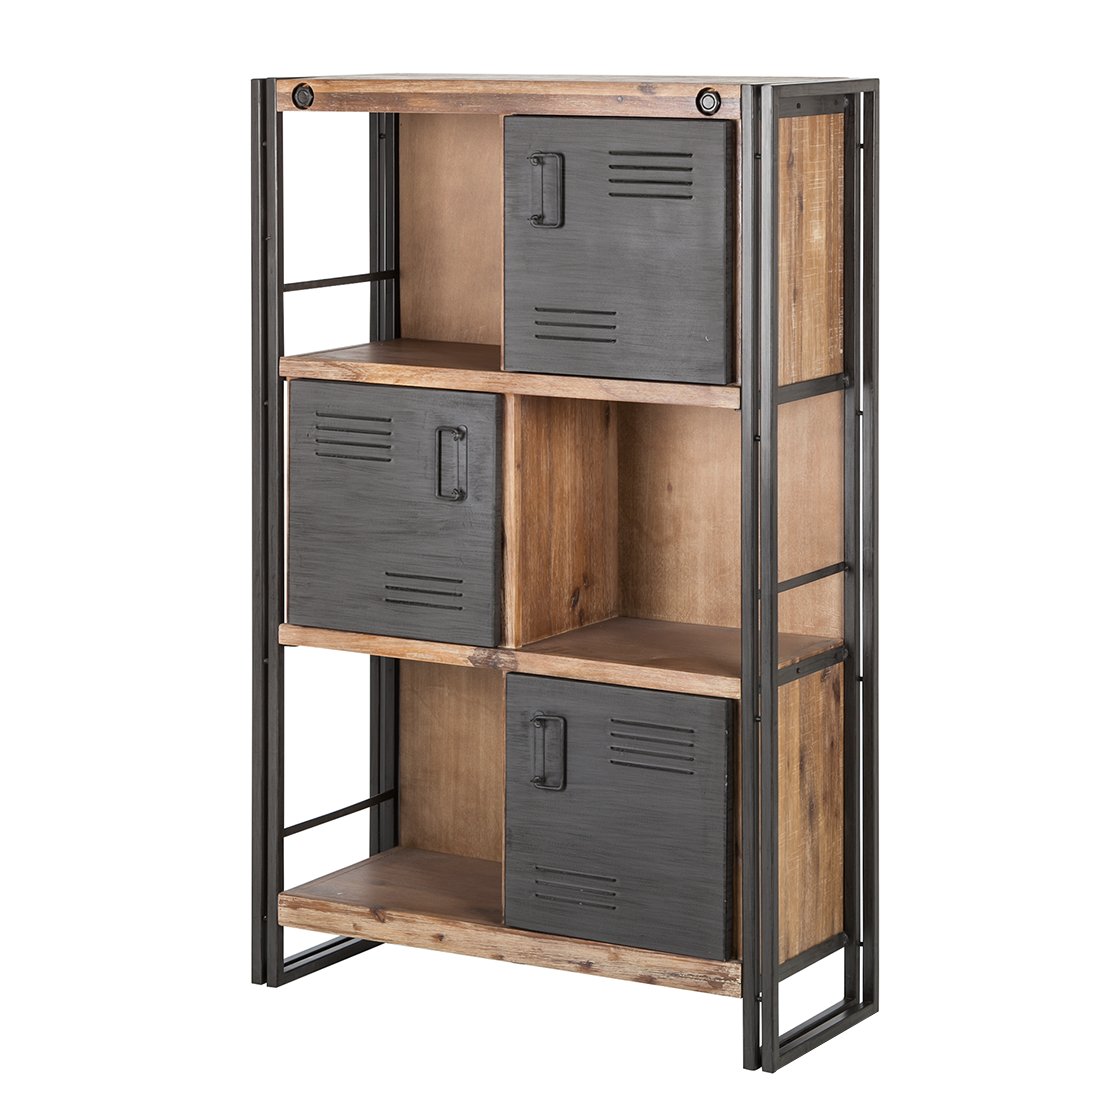 hochkommode 3 t ren akazie holz metall highboard regal schrank anrichte neu ebay. Black Bedroom Furniture Sets. Home Design Ideas